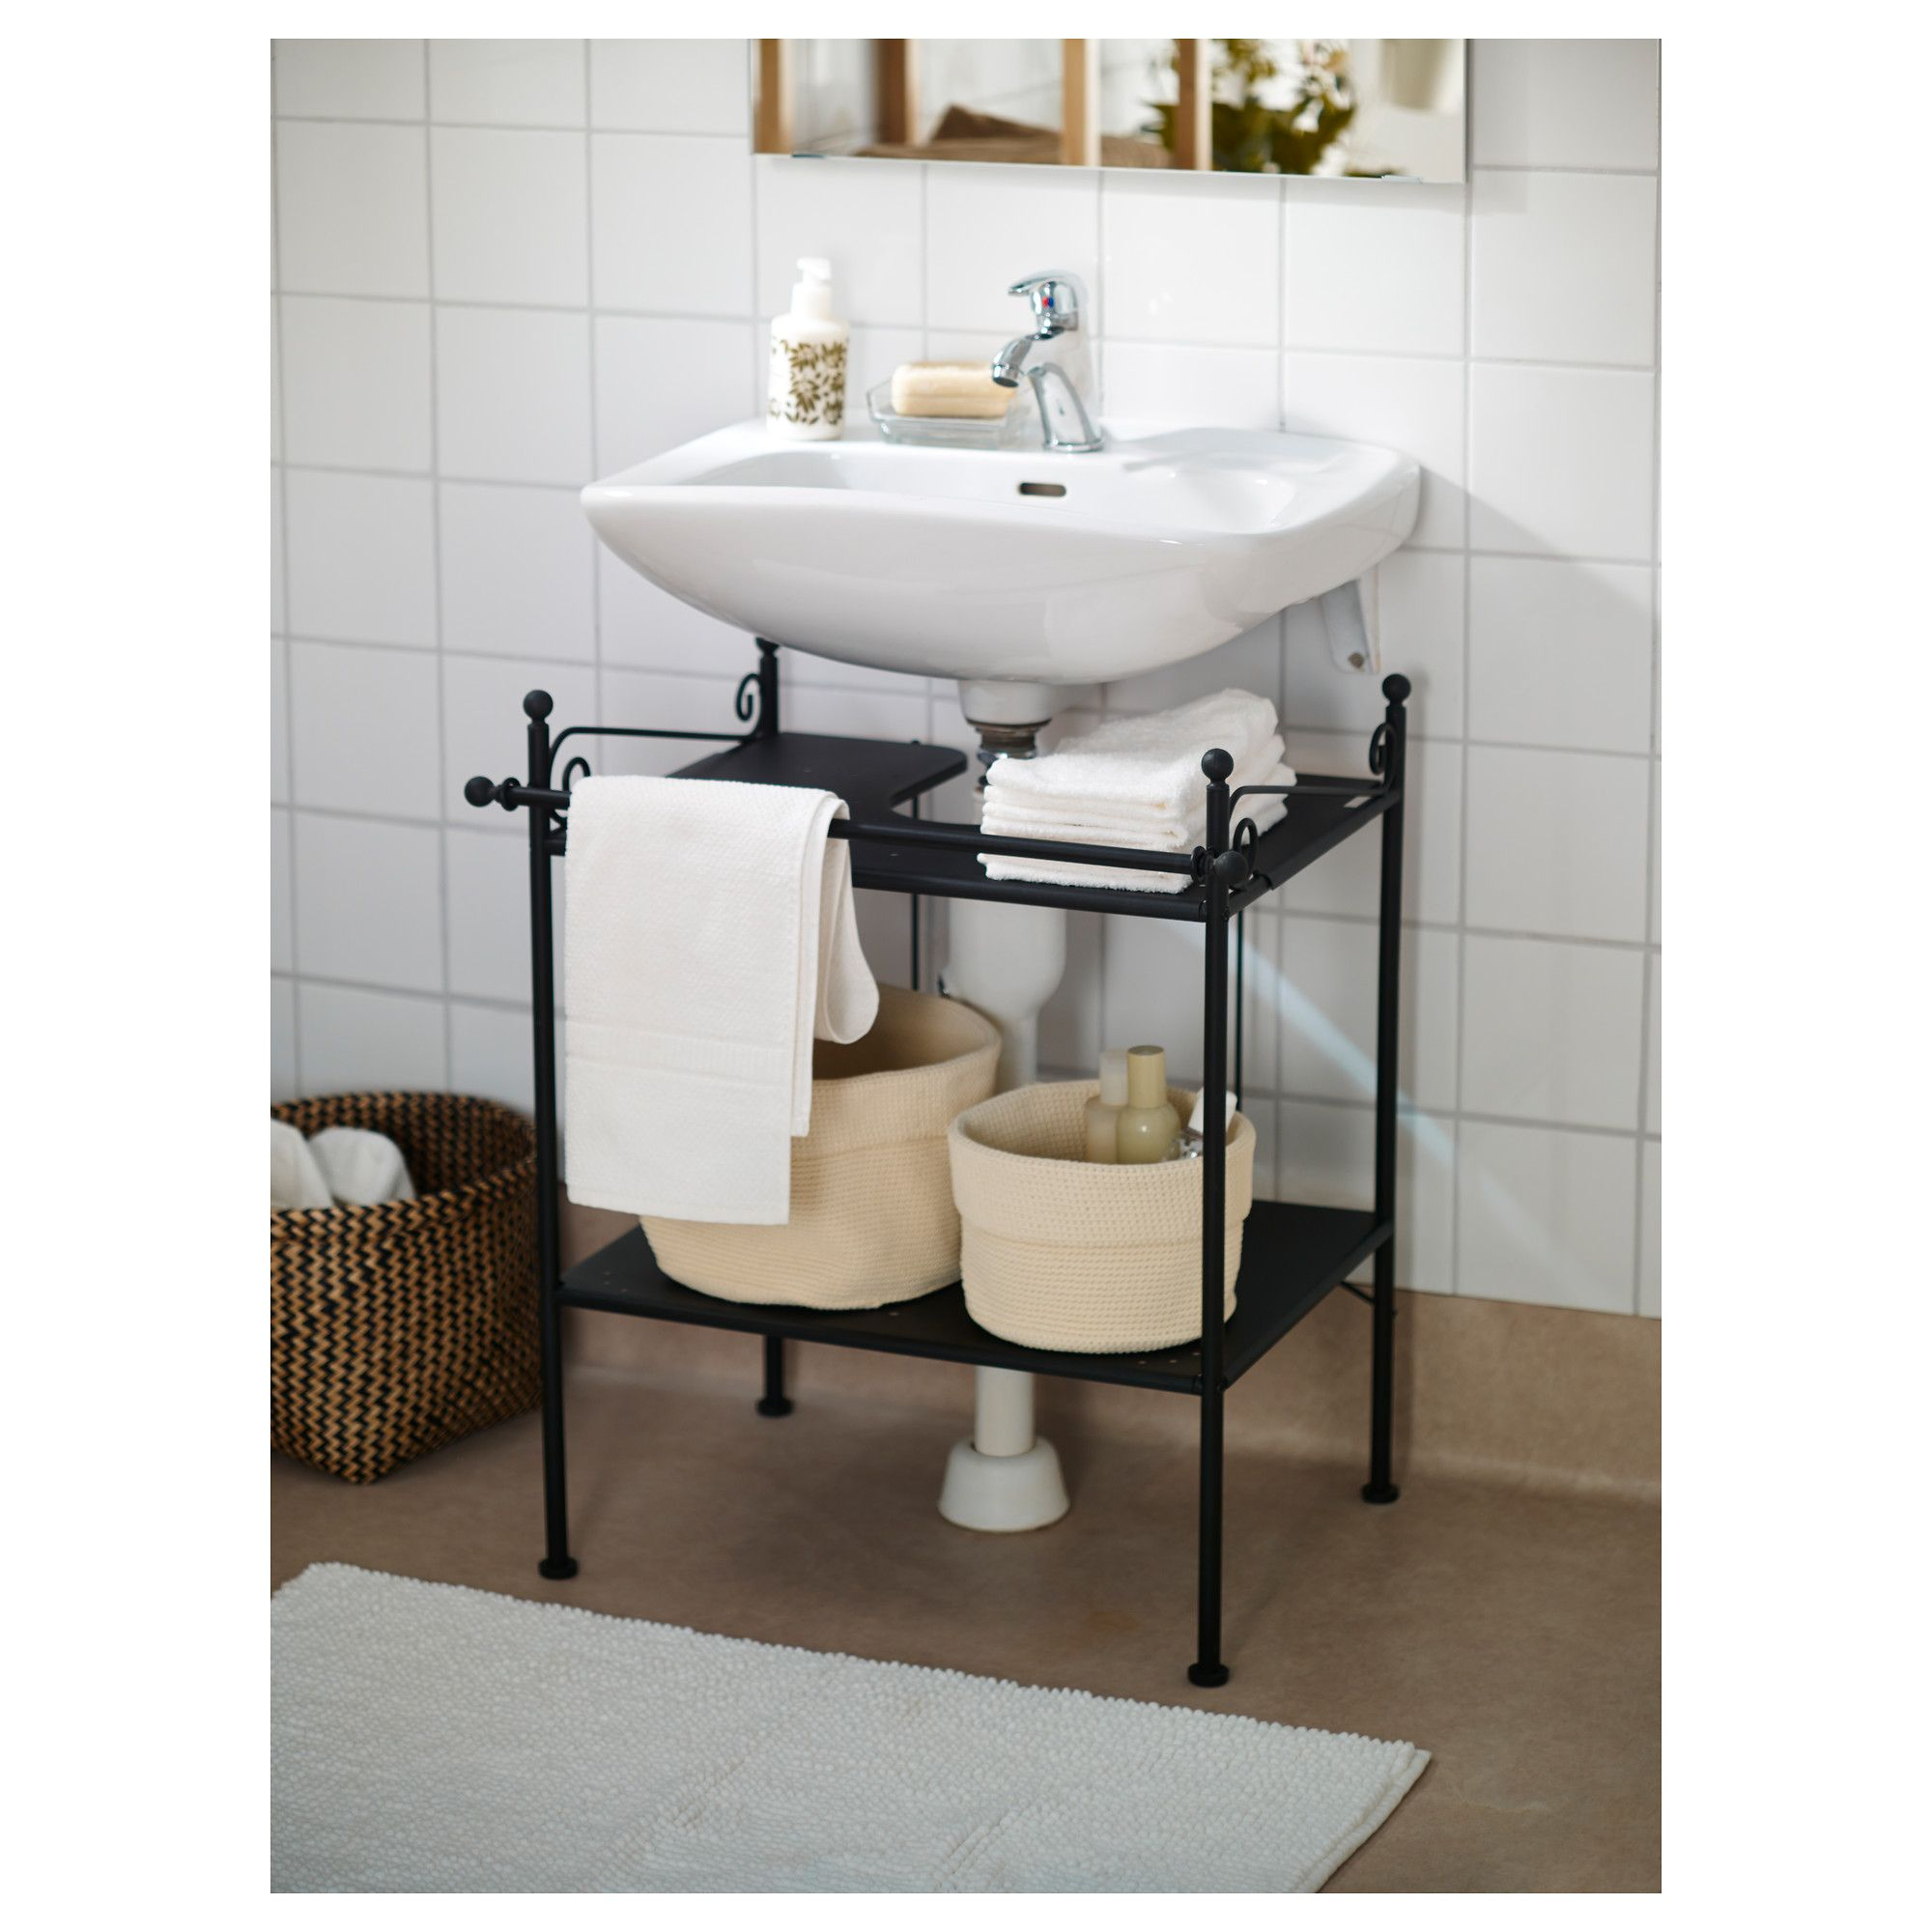 Ronnskar Sink Shelf   A Sink Is Generally Shaped And Is Also Called Basin.  This Is Used To Wash Hands Or Objects.